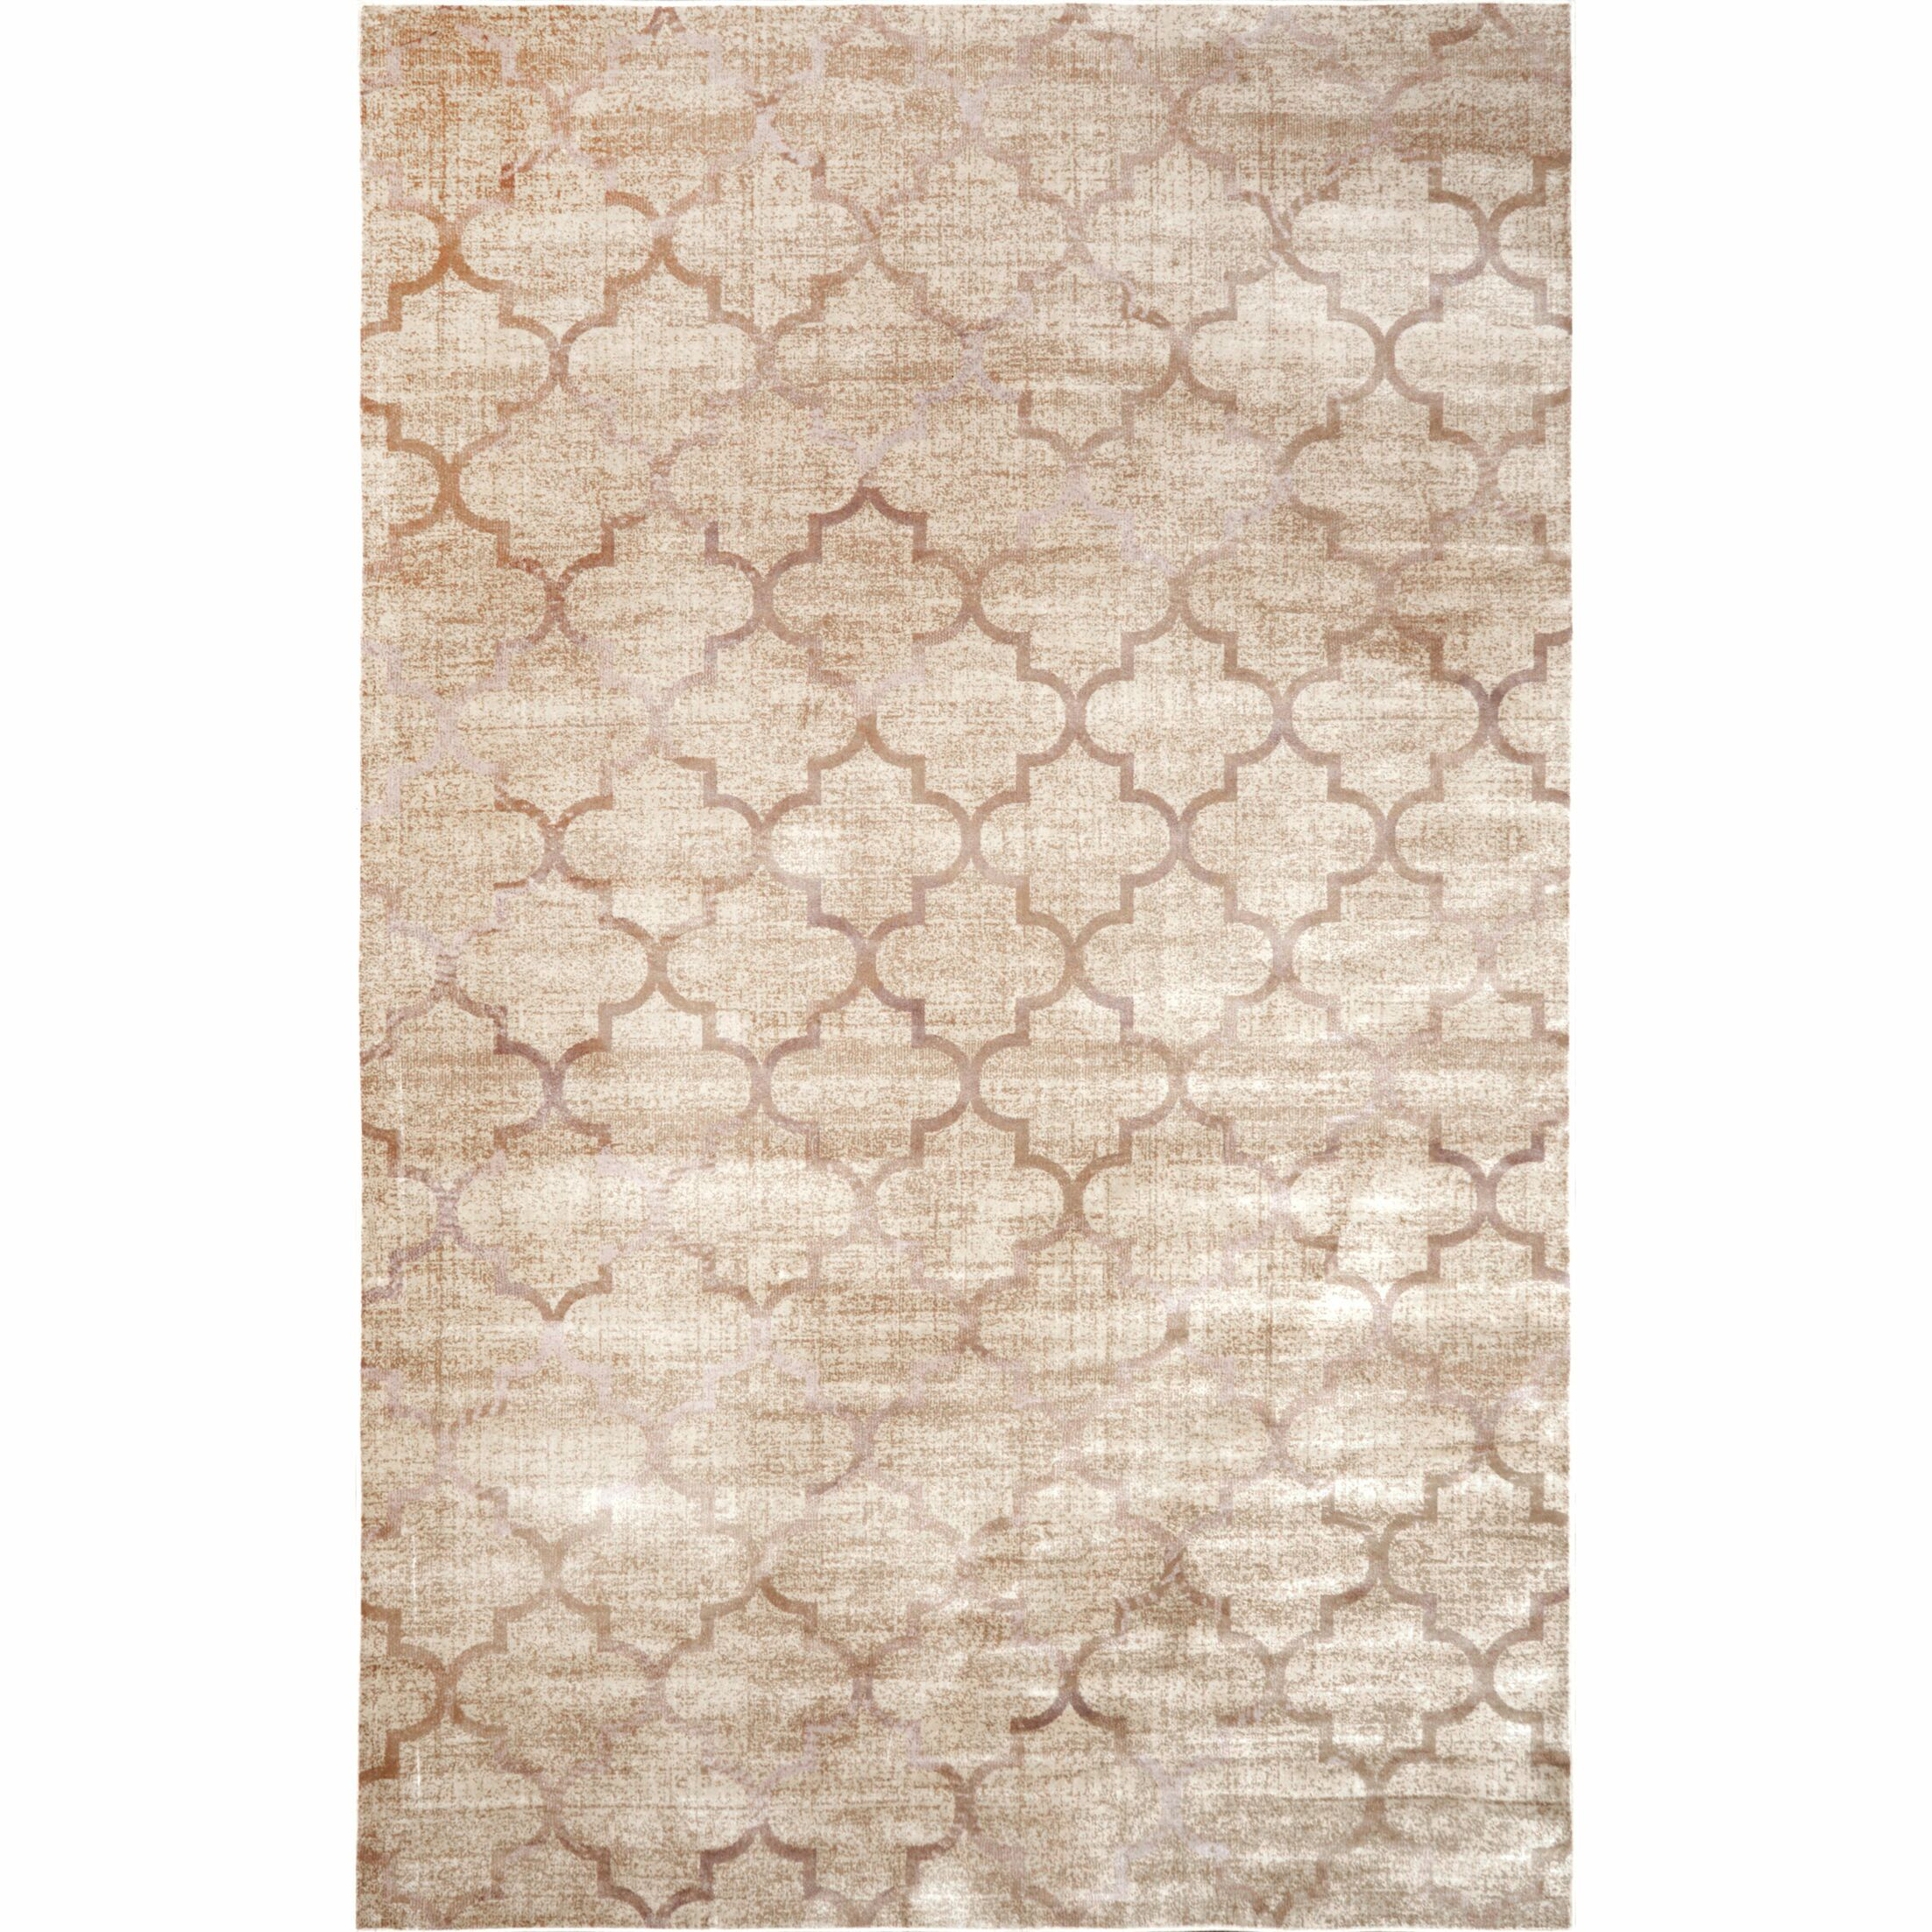 Archdale Ivory Area Rug Rug Size: Rectangle 5'2